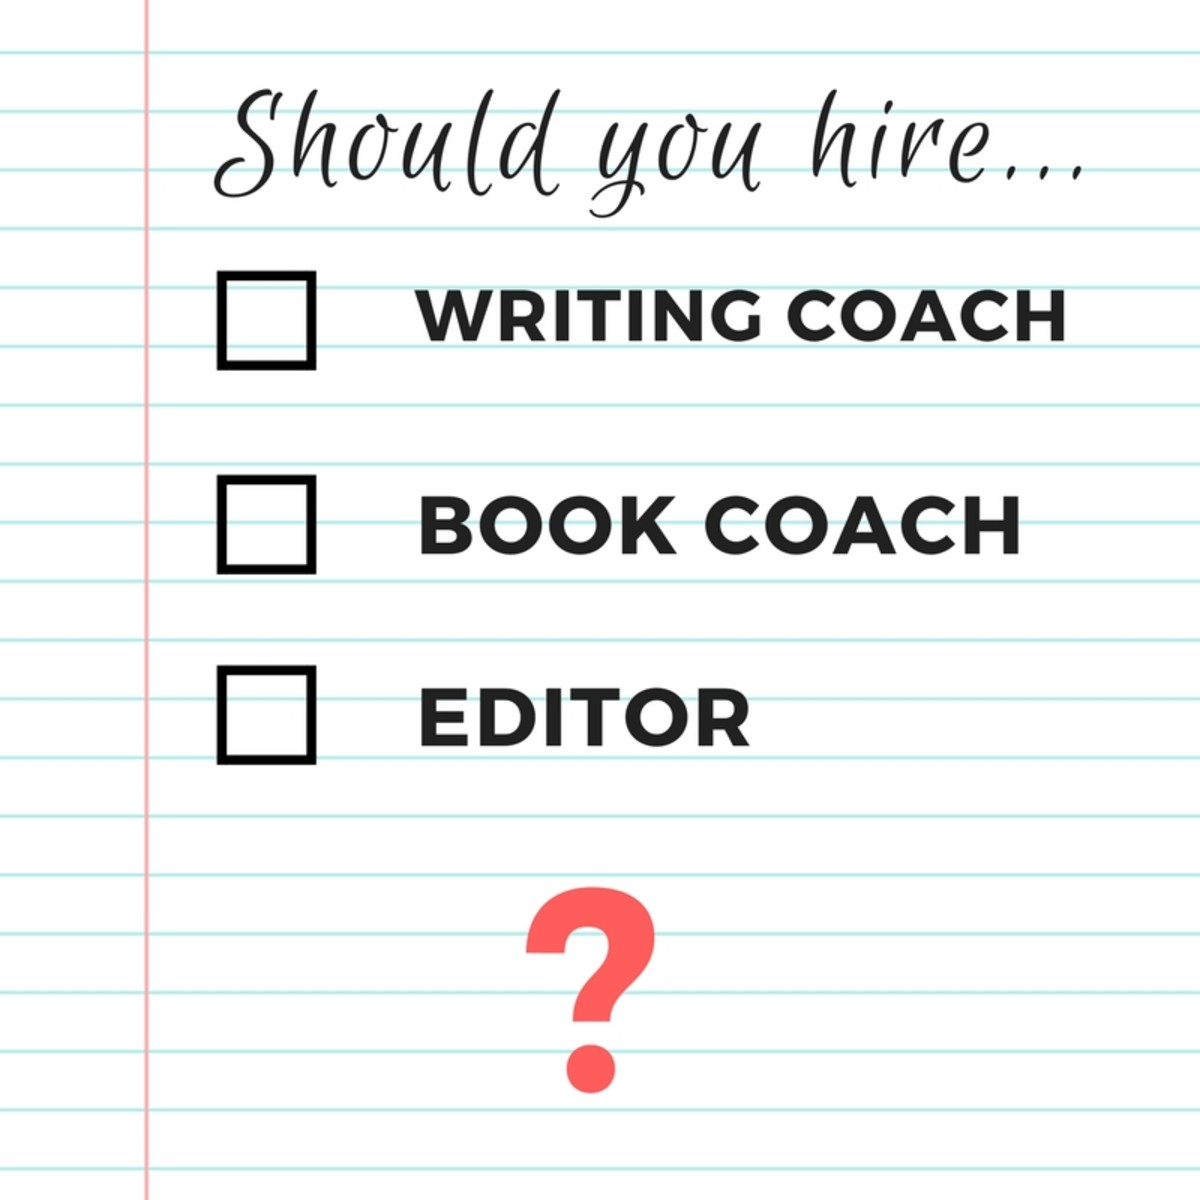 Should You Hire a Writing Coach, a Book Coach, or an Editor?